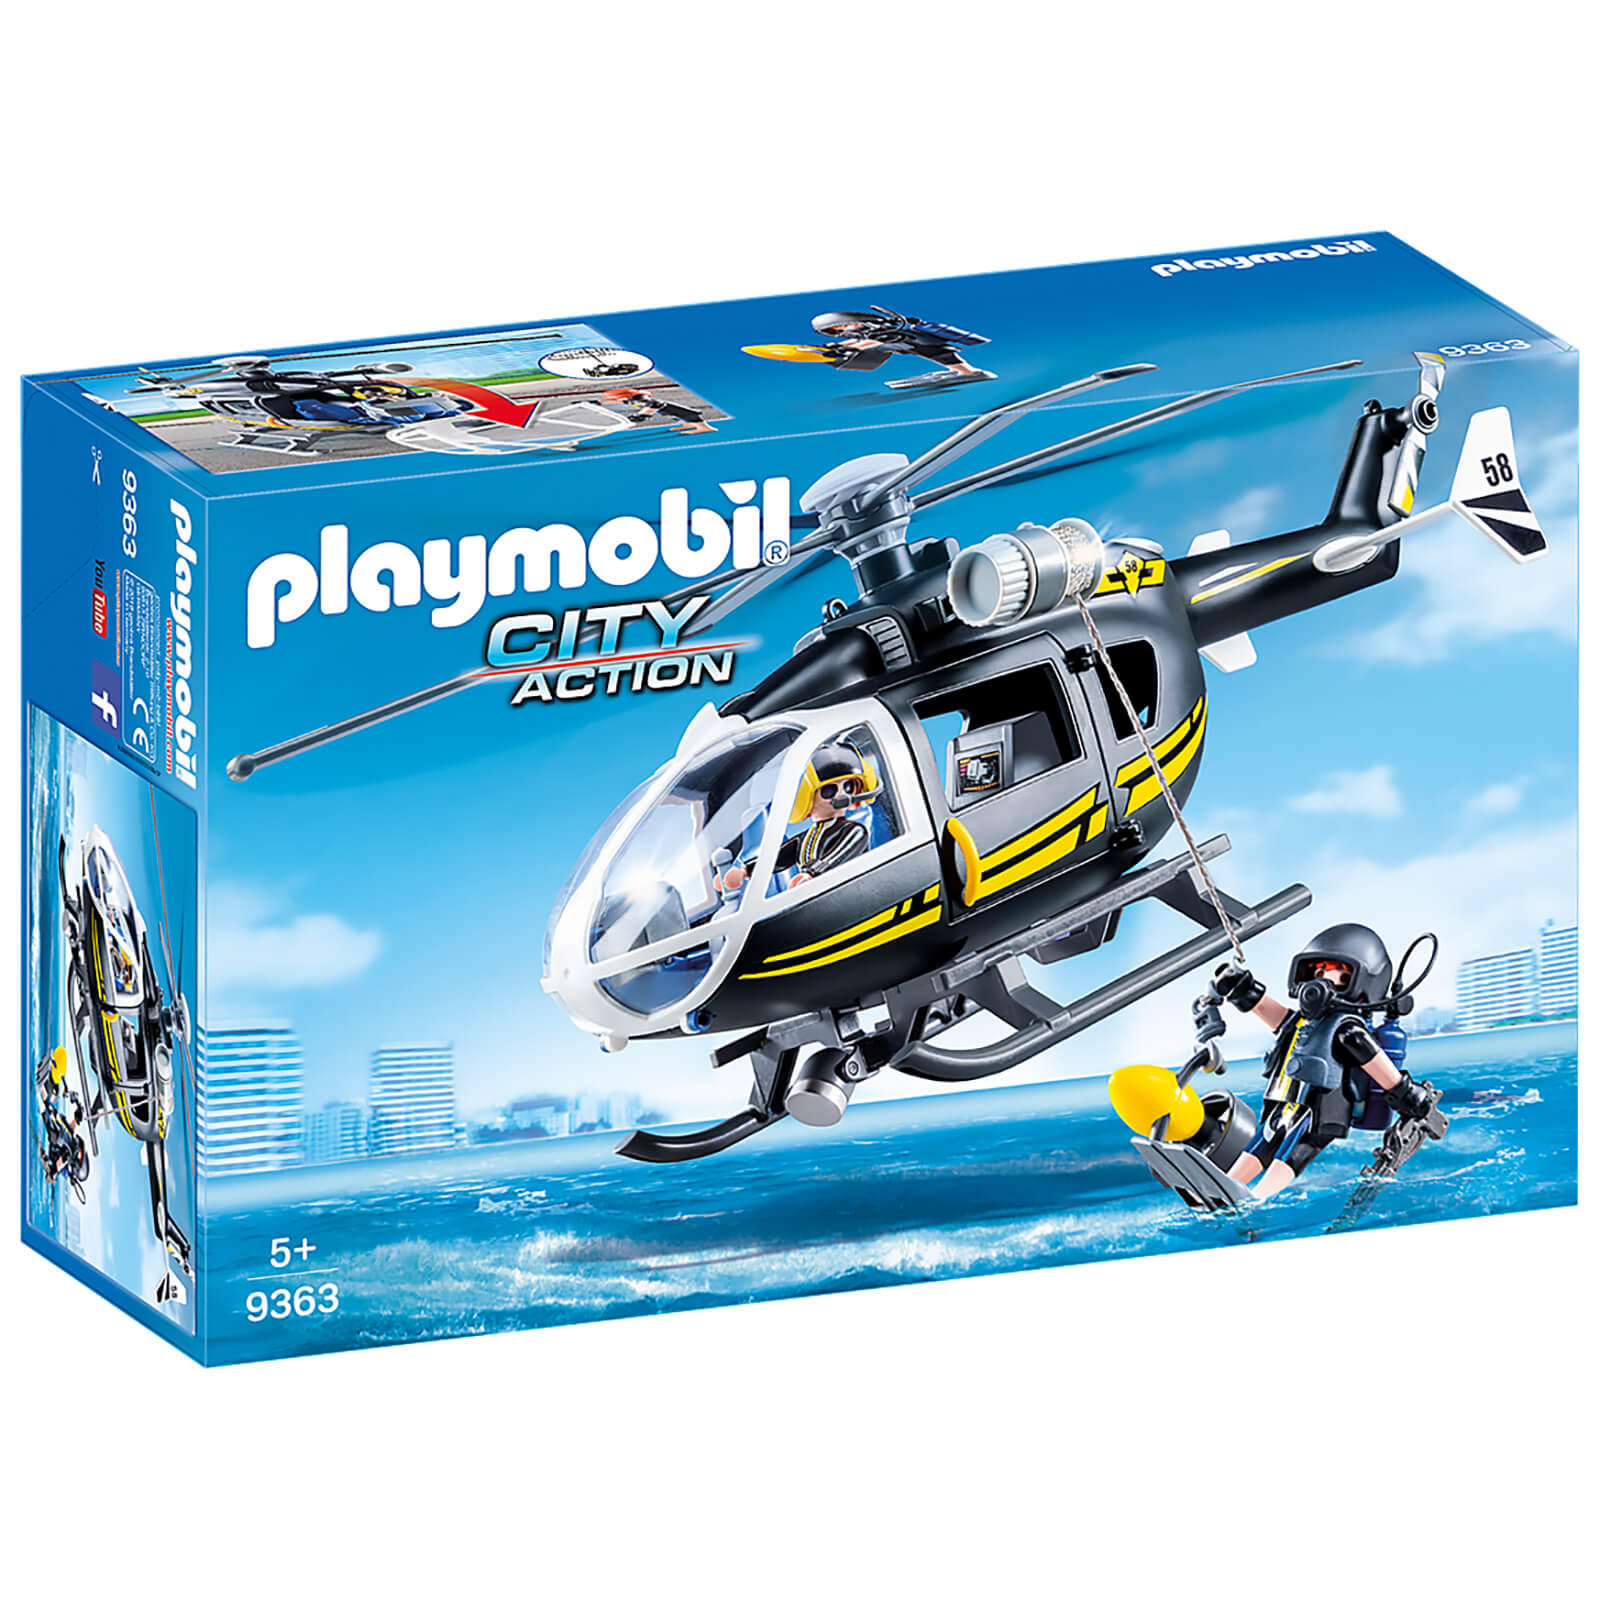 Playmobil City Action SWAT Helicopter with Working Winch (9363)